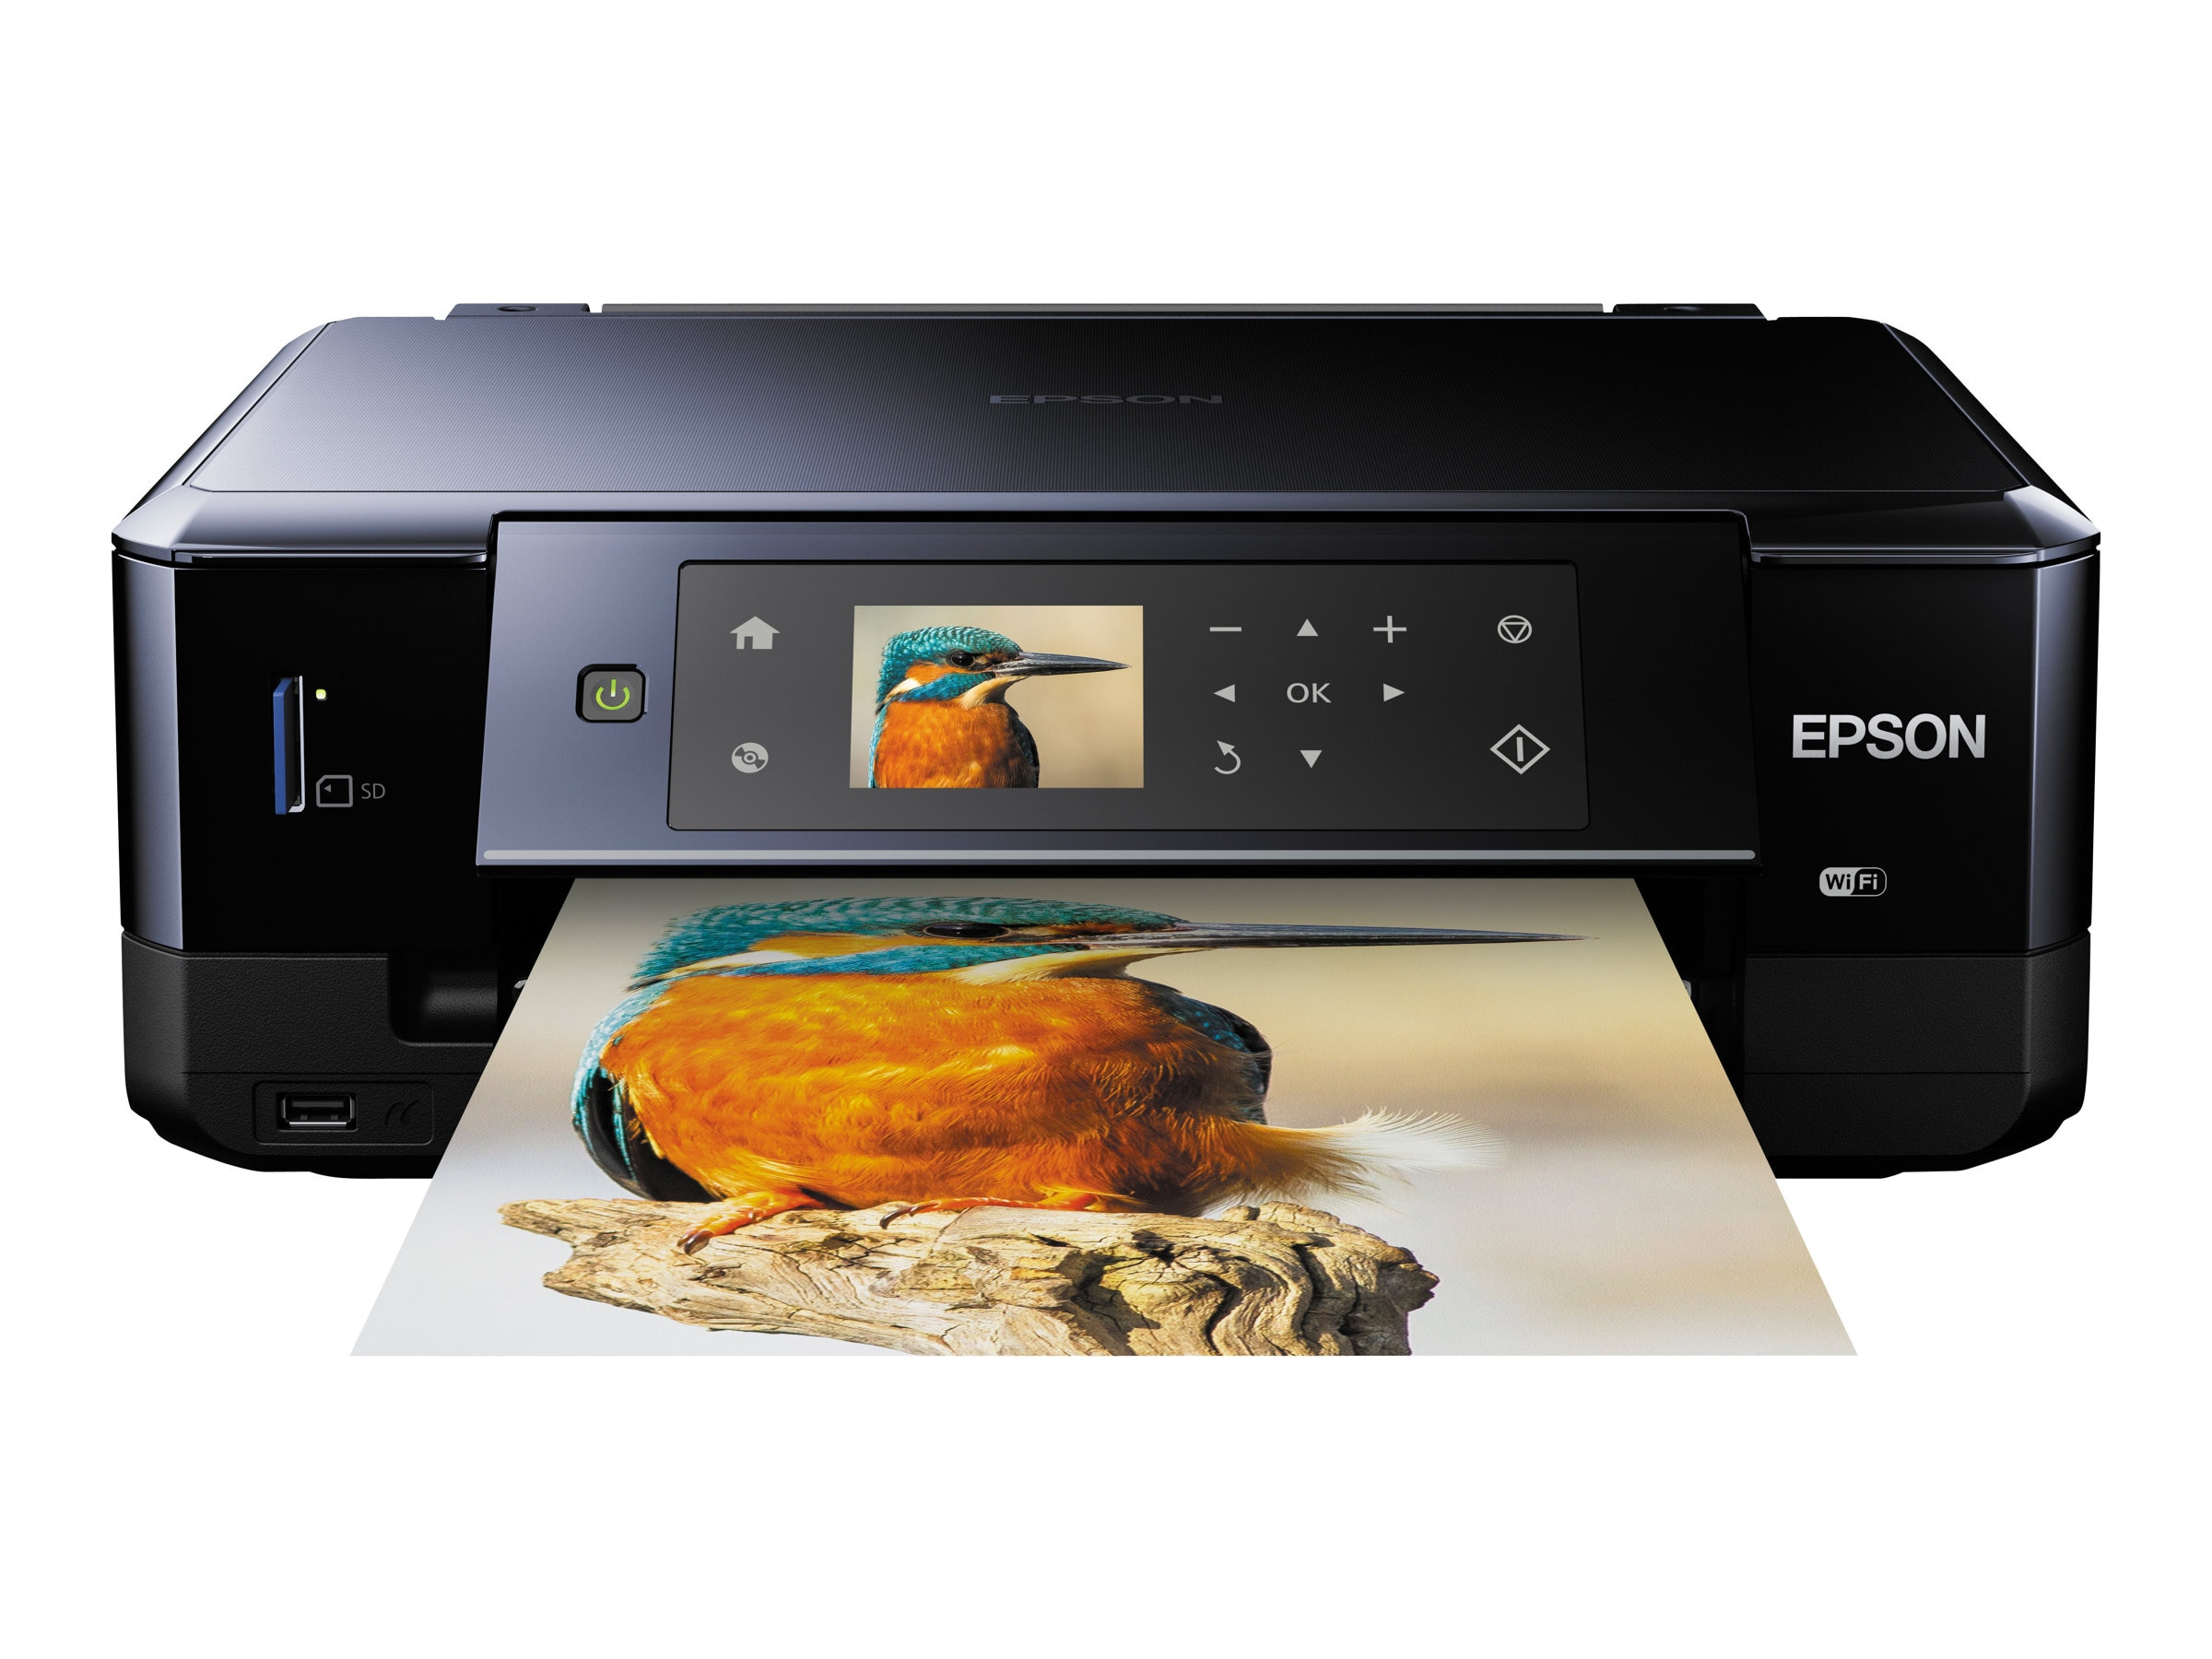 Refurb. Epson XP620 All-In-One Printer, C11CE01201-N, 31447497, MultiFunction - Ink-Jet